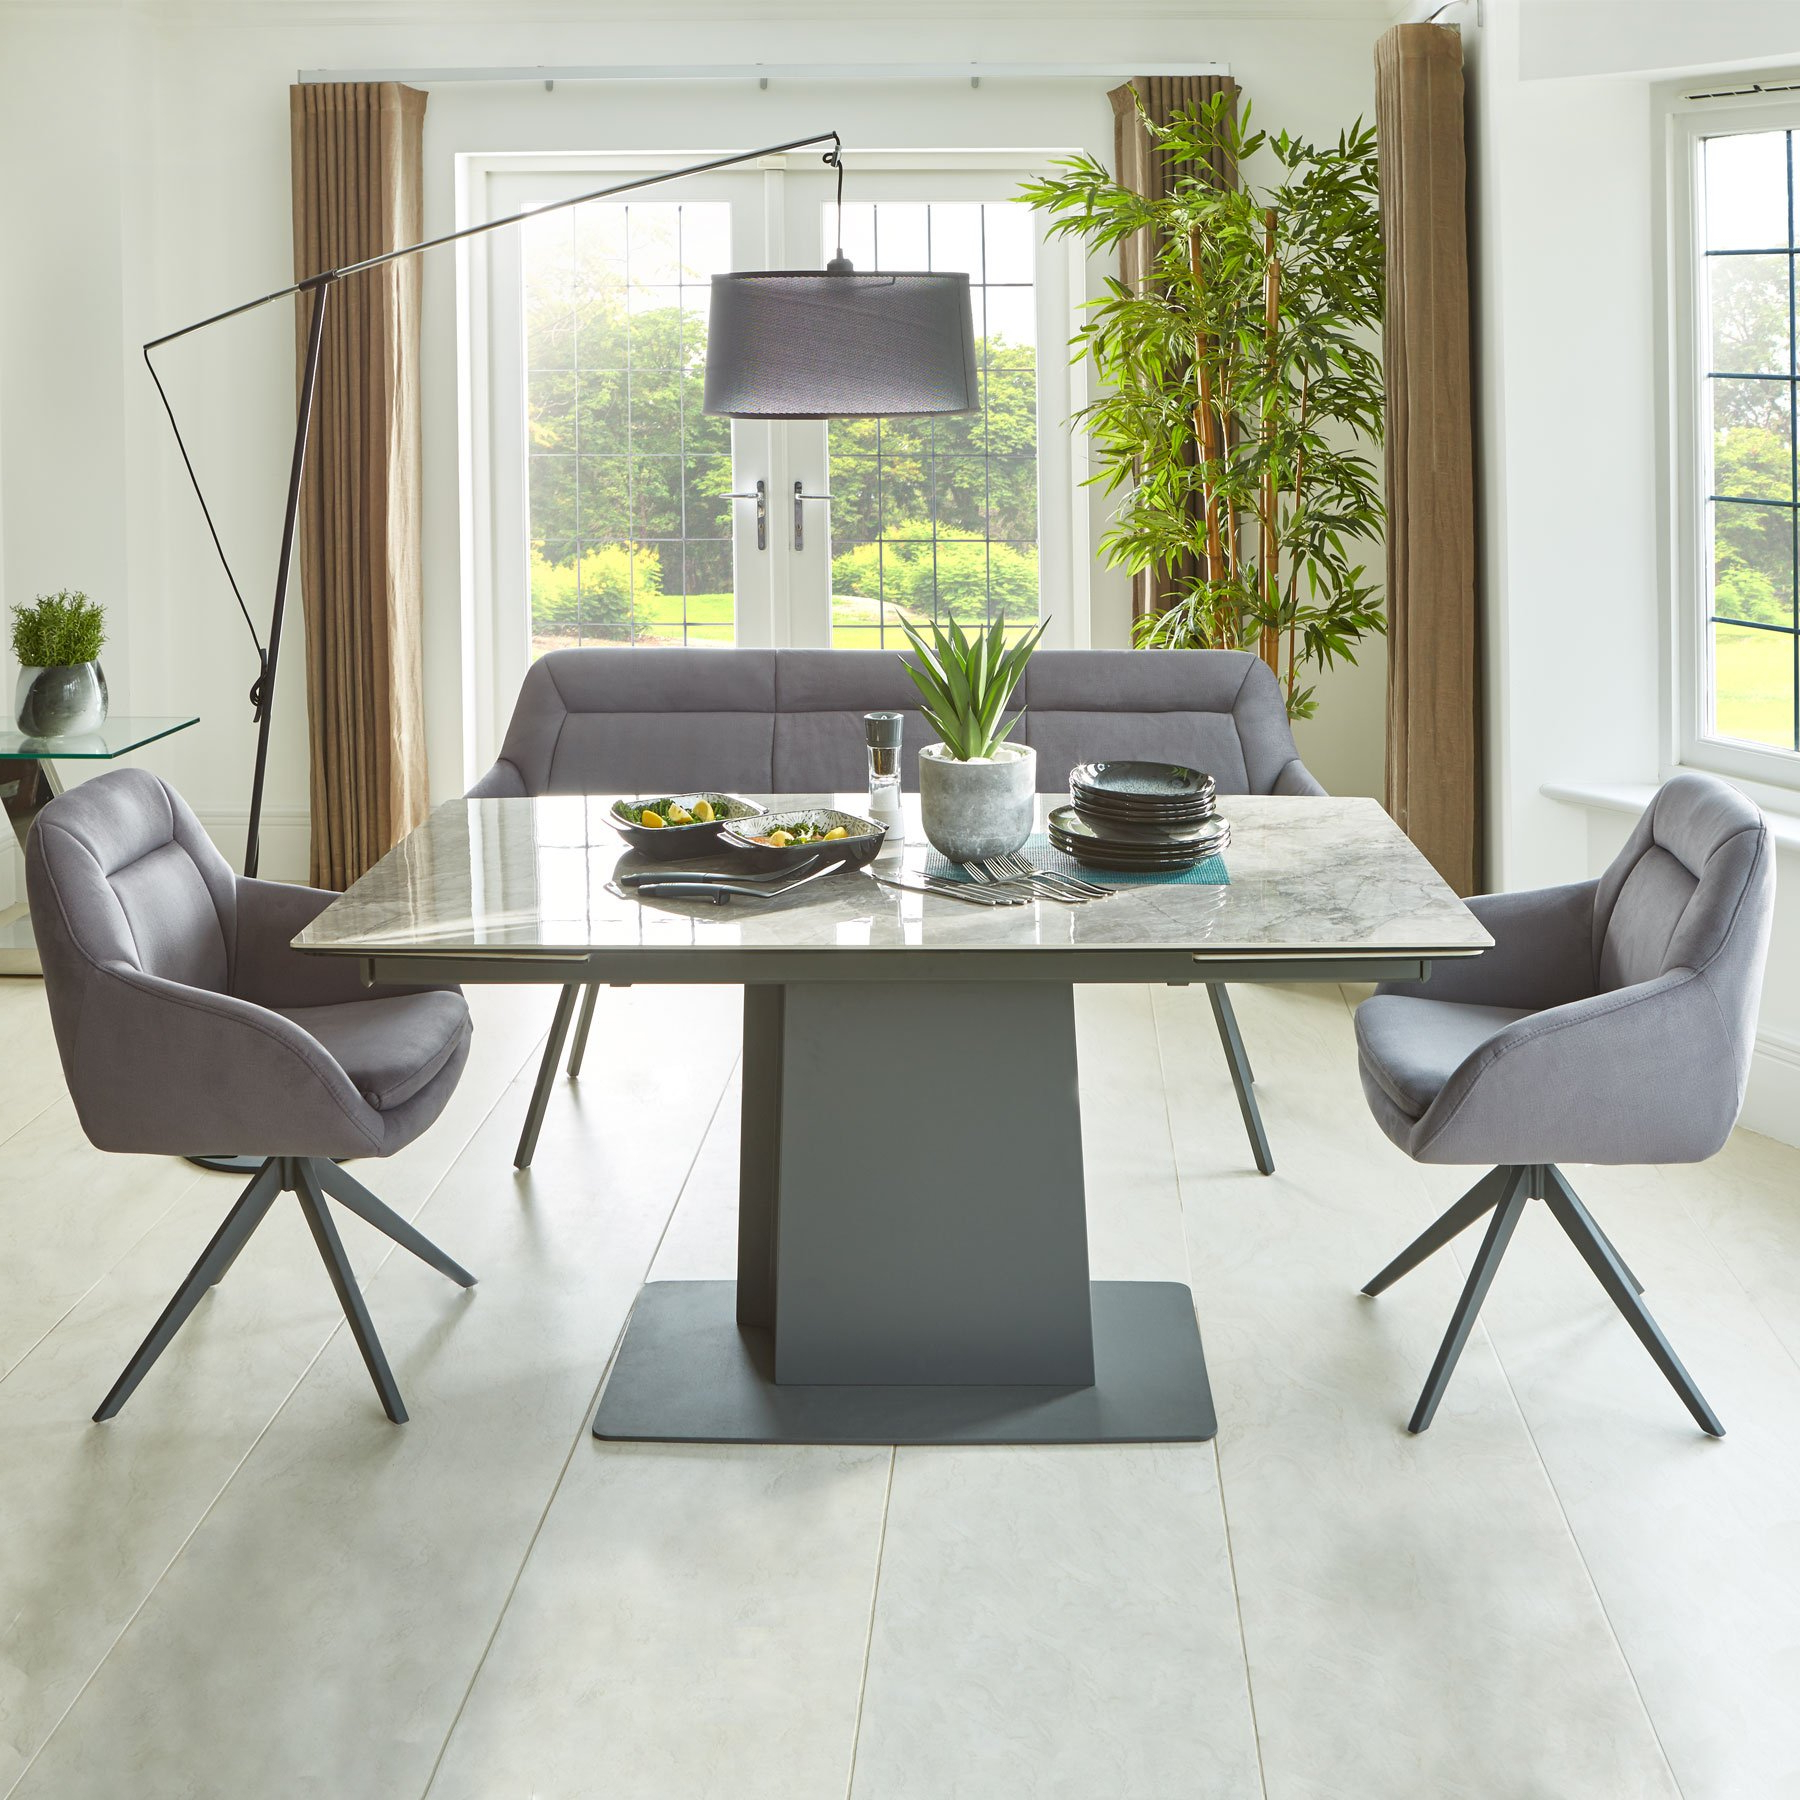 Ideas About Extending Dining Bench, – Howellmagic Dining Intended For Current Alfresco Brown Benchwright Pedestal Extending Dining Tables (View 14 of 25)